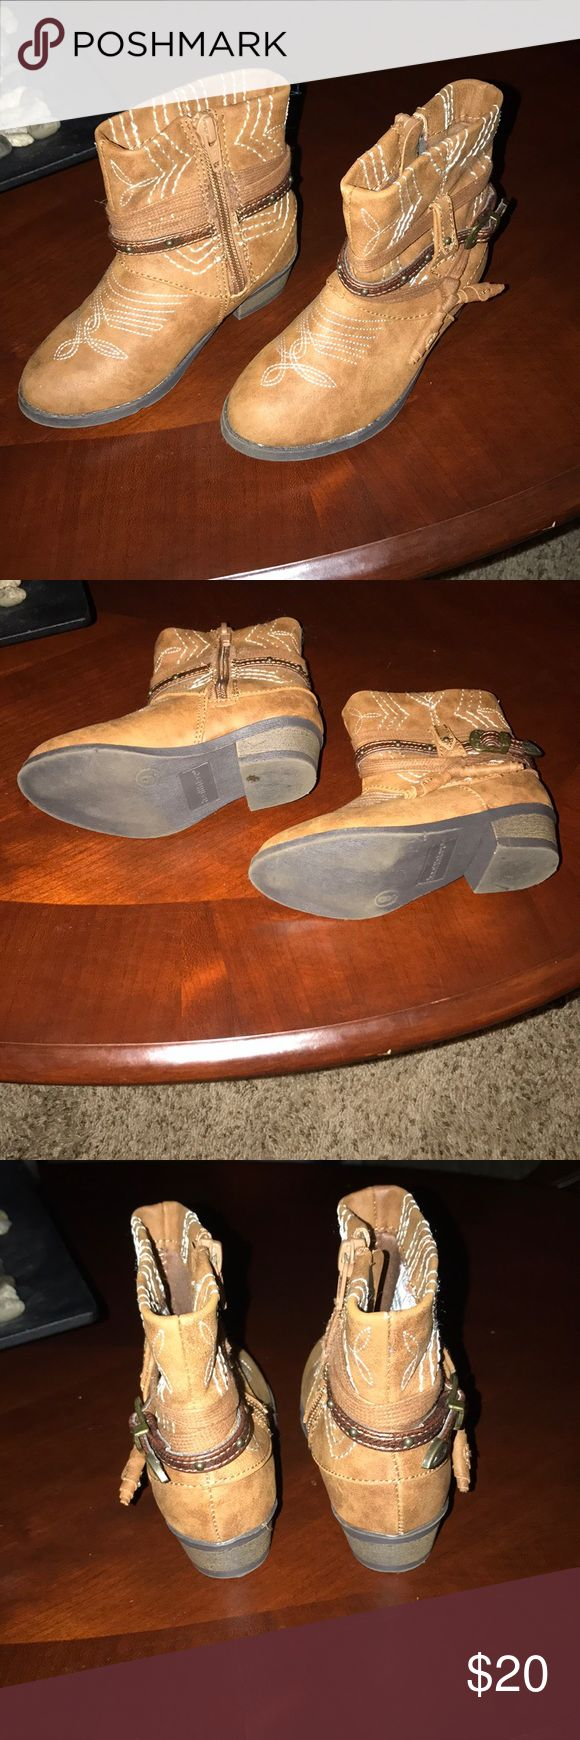 Toddler girl's cowboy boots Brown, EUC boots Shoes Boots